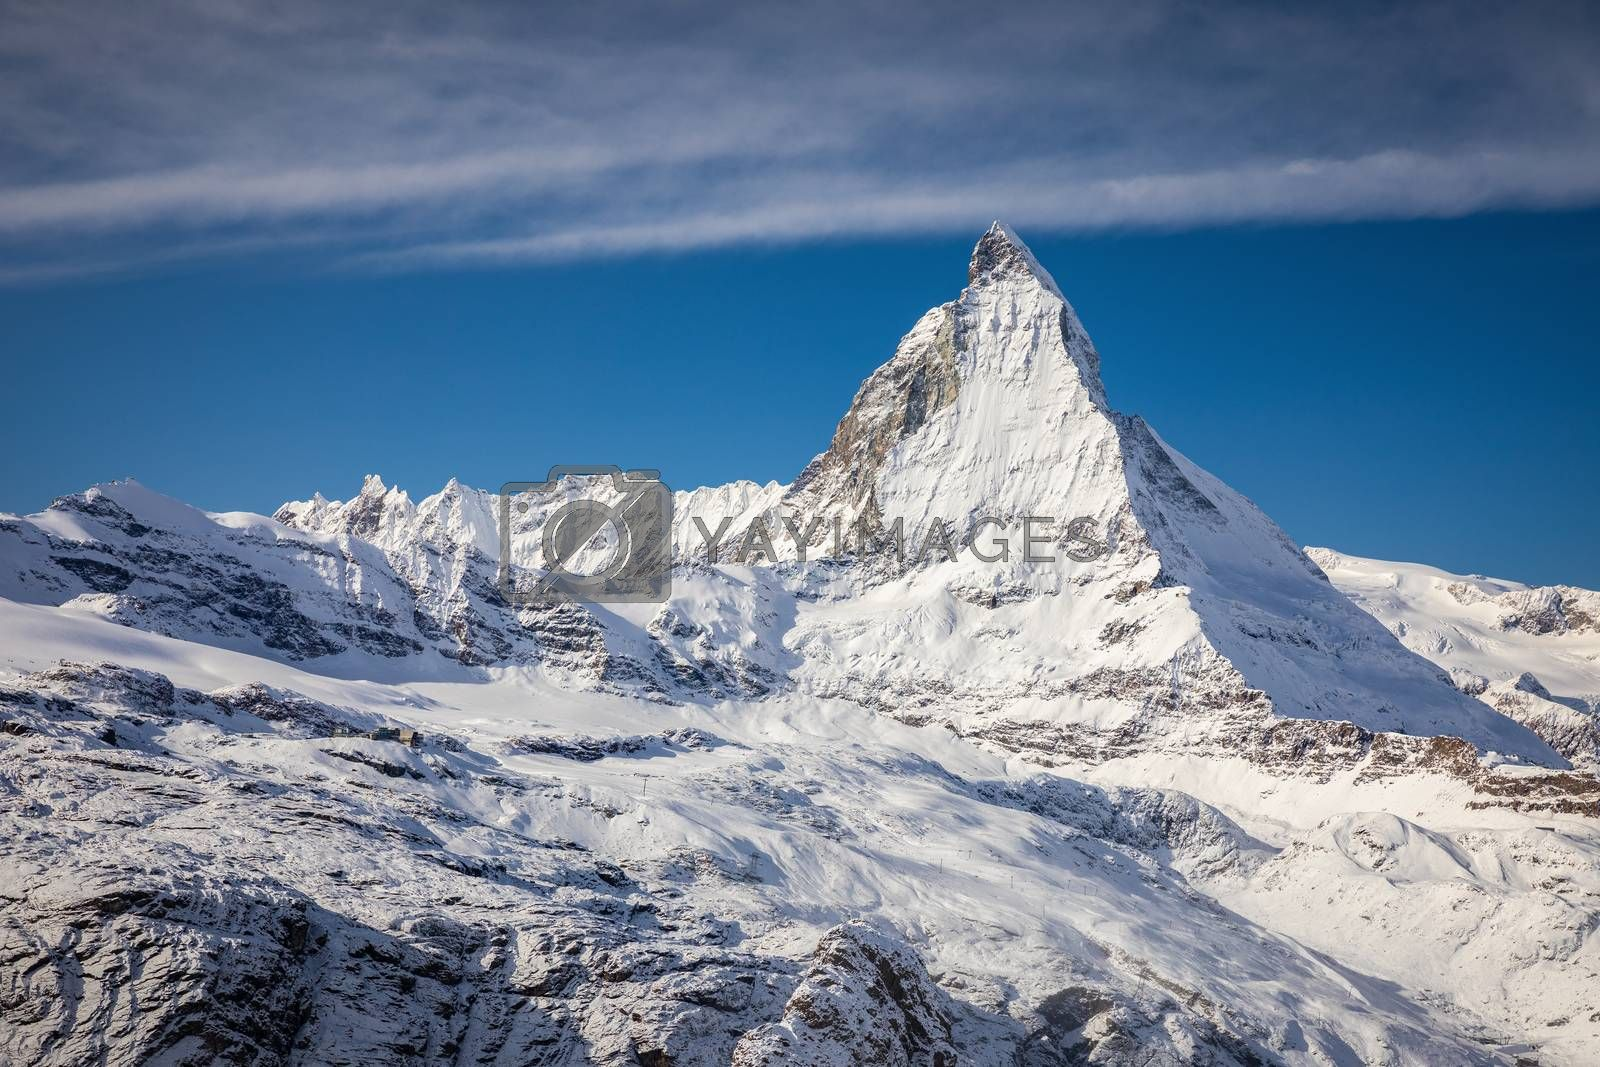 Aerial of Matterhorn summit looking from Gornergrat mountain, most area covered by snow in early winter in Zermatt, Switzerland.